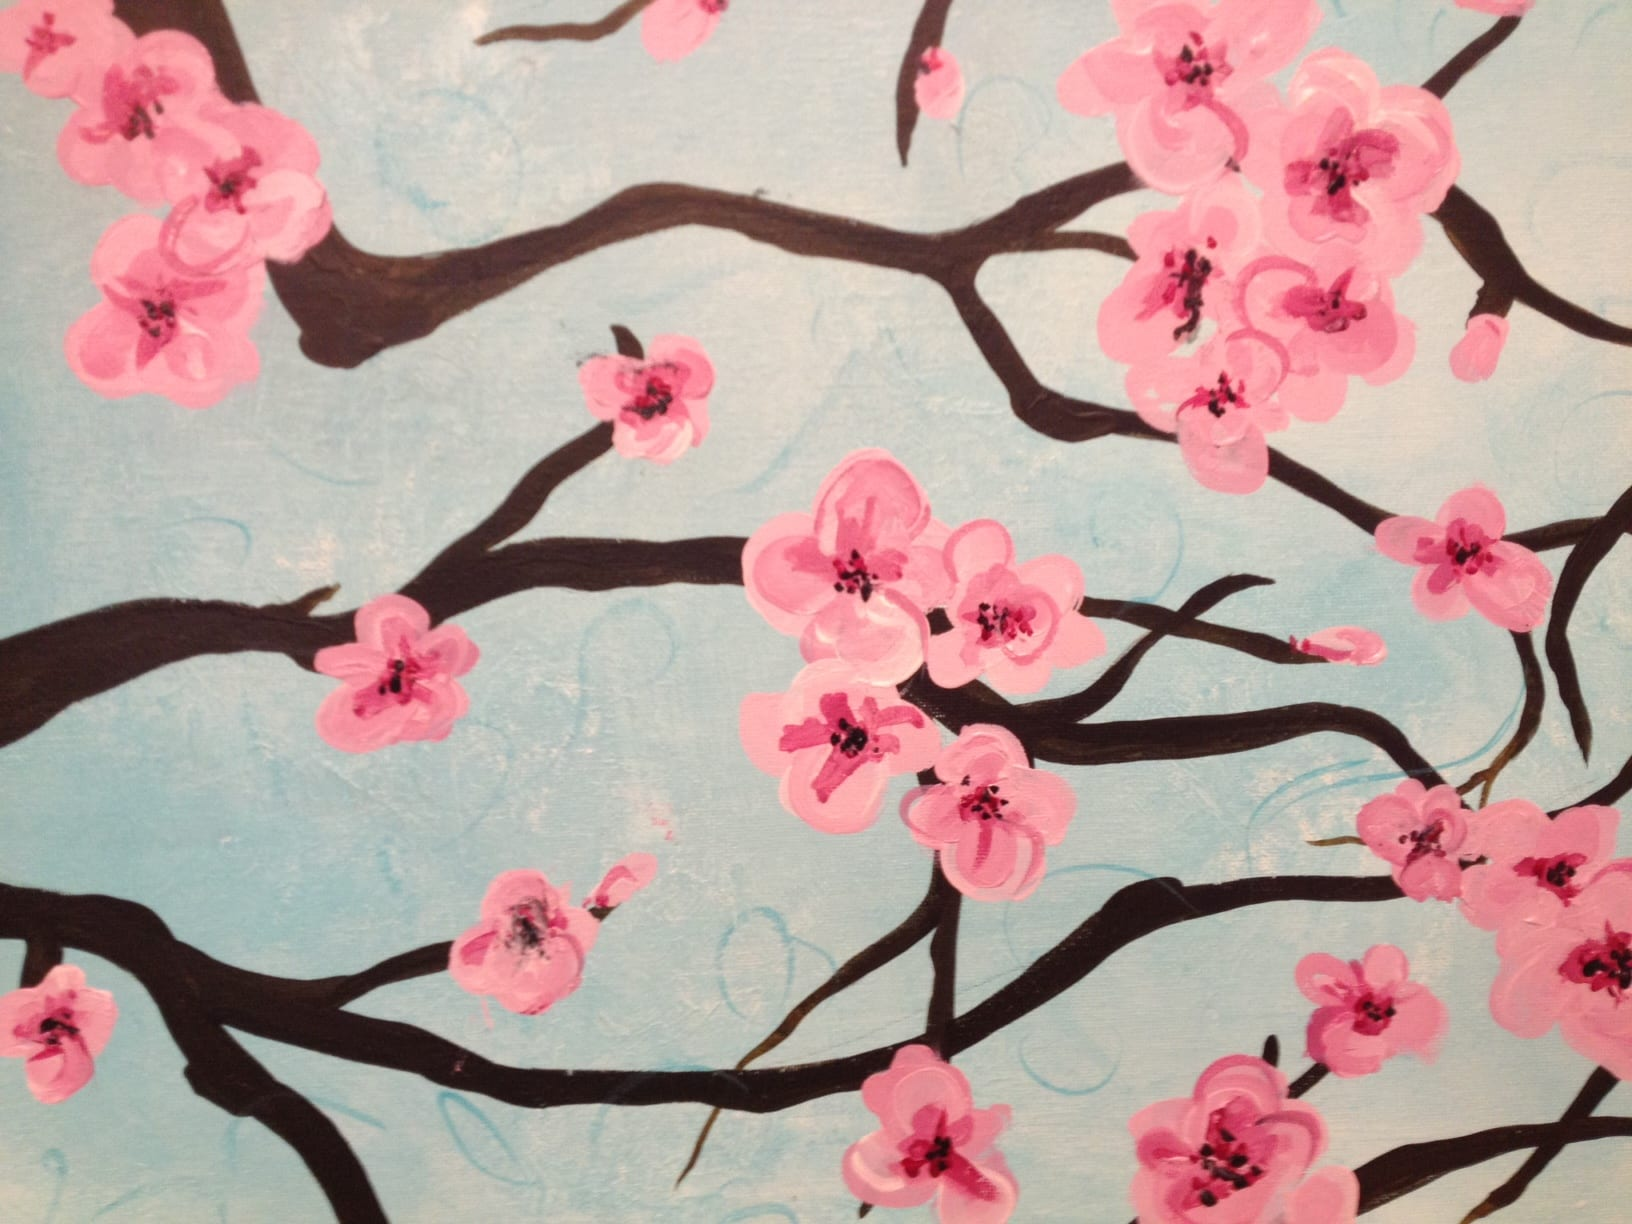 Monday mini workshops in acrylic painting general north for Cherry blossom mural works